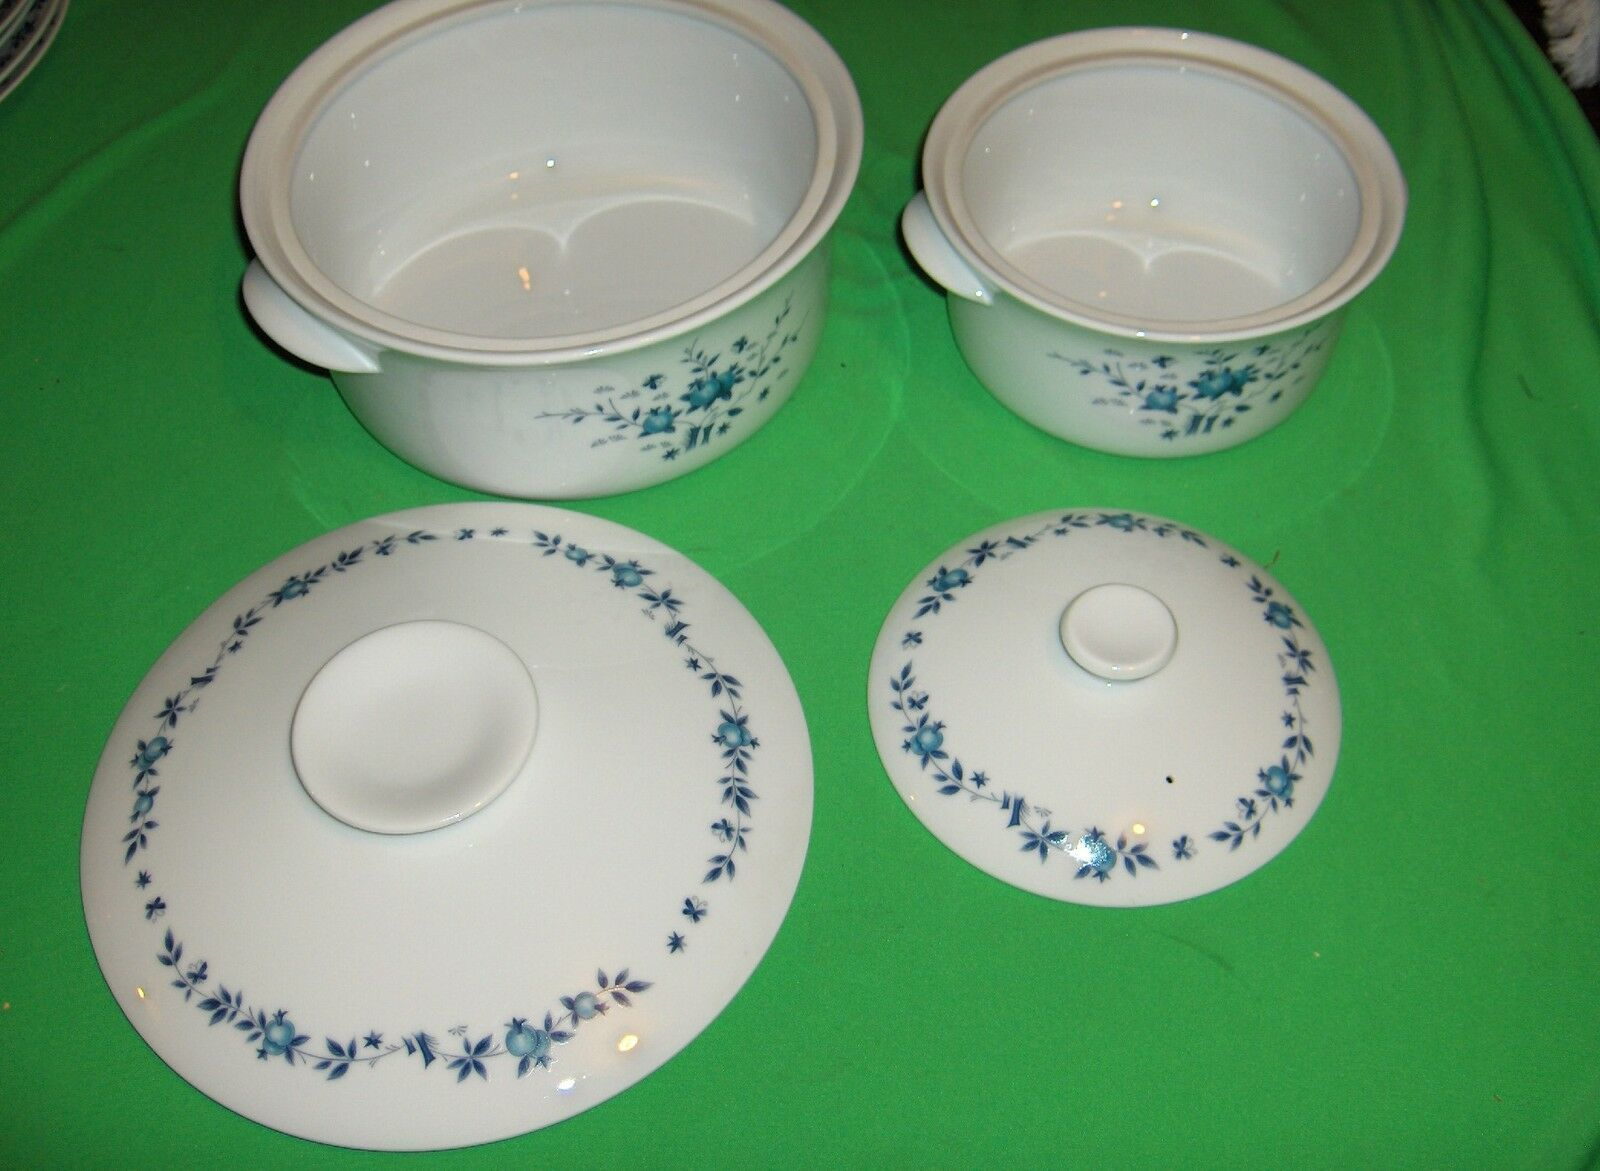 Primary image for 4 Pc Vintage Noritake China Country Side Cook 'N Serve Covered Casseroles #6899